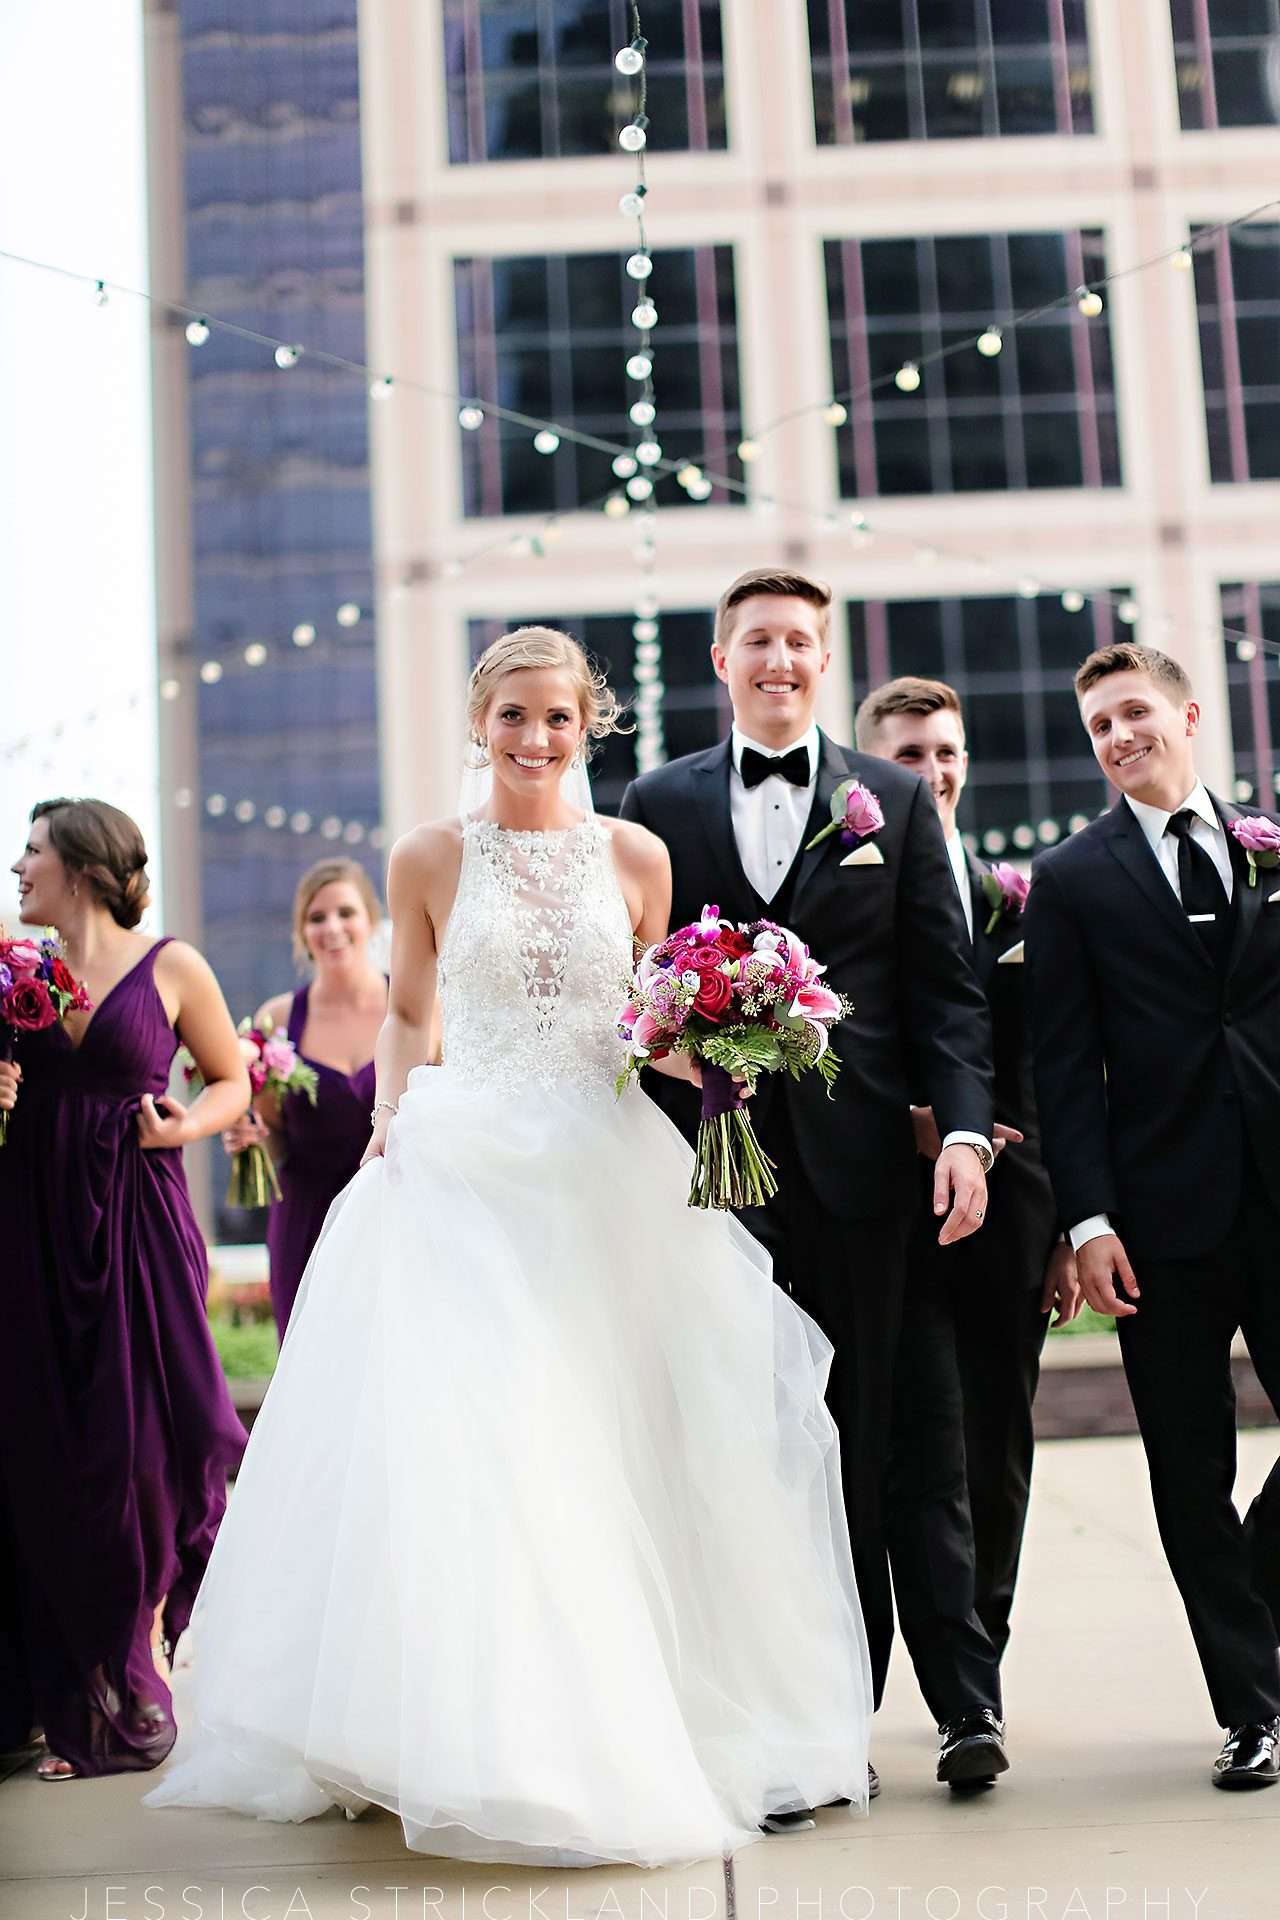 Serra Alex Regions Tower Indianapolis Wedding 210 watermarked